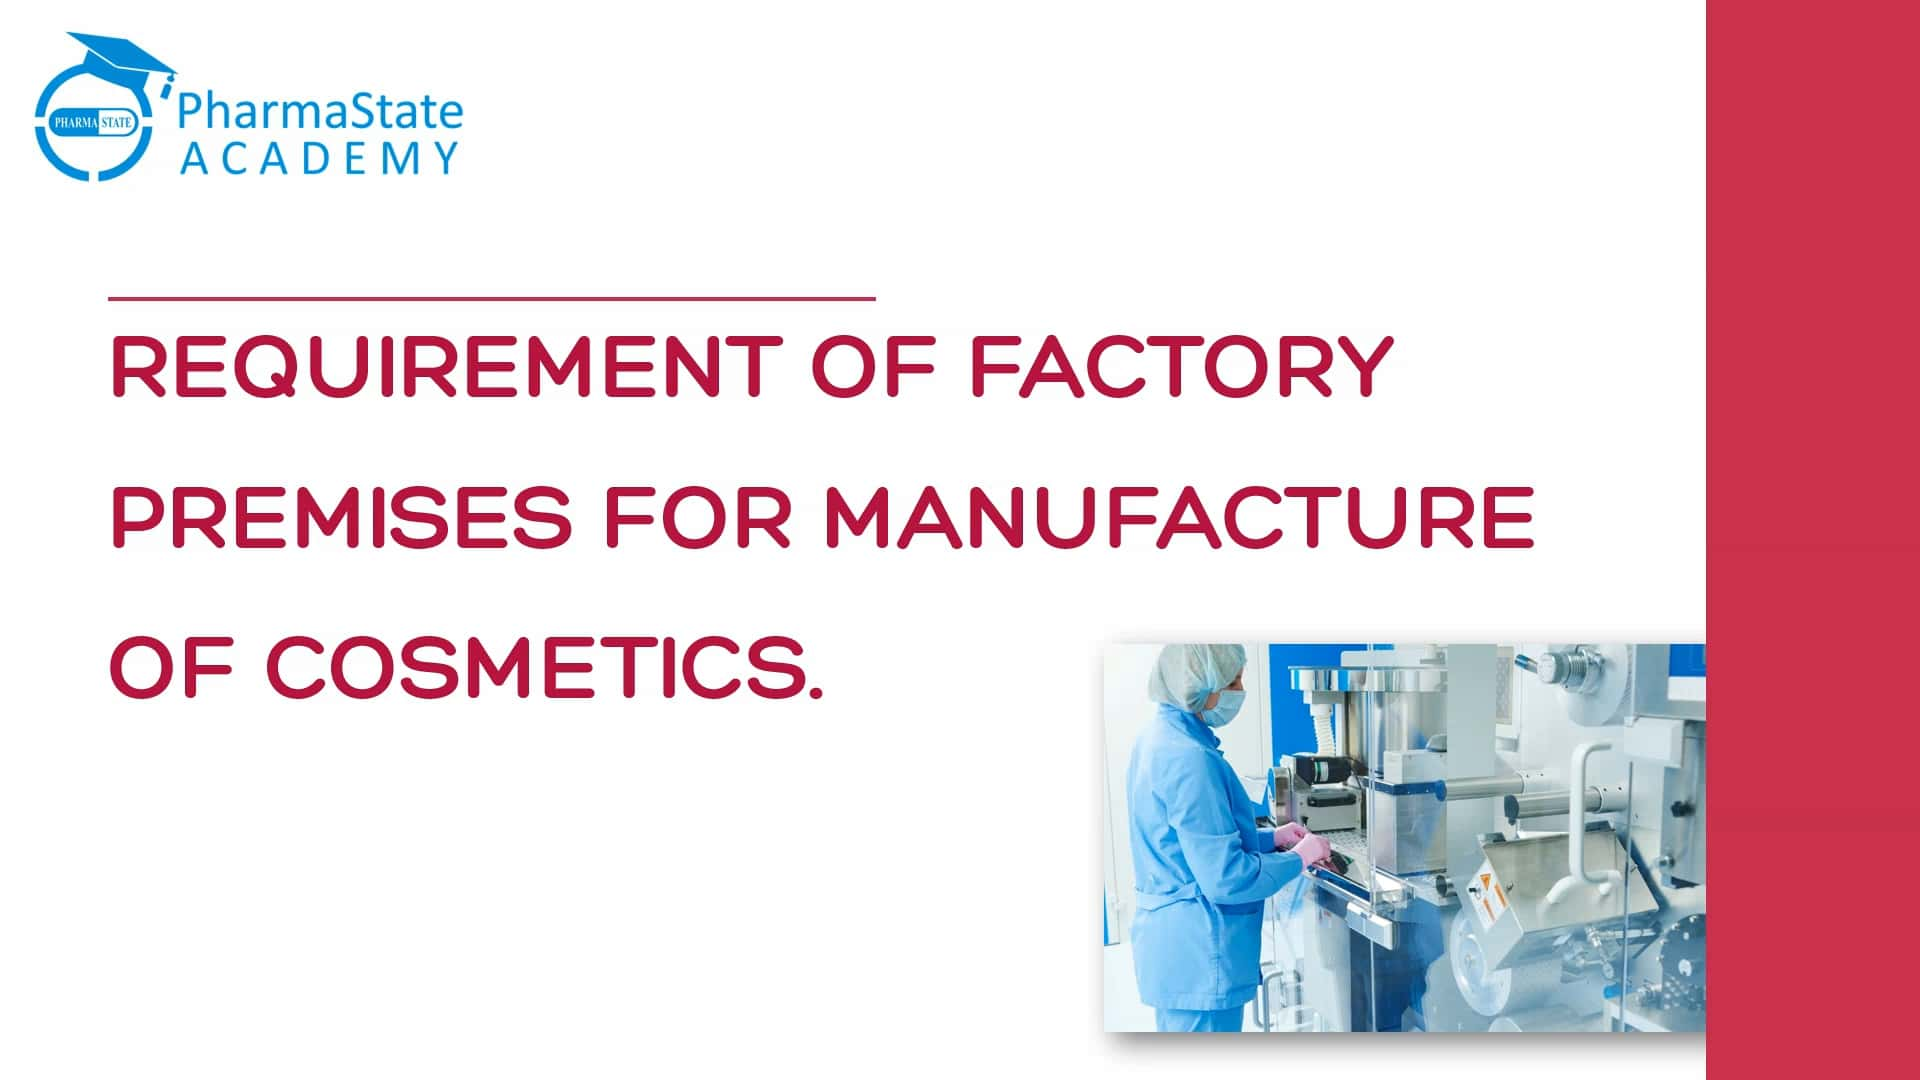 REQUIREMENT OF FACTORY PREMISES FOR MANUFACTURE OF COSMETICS